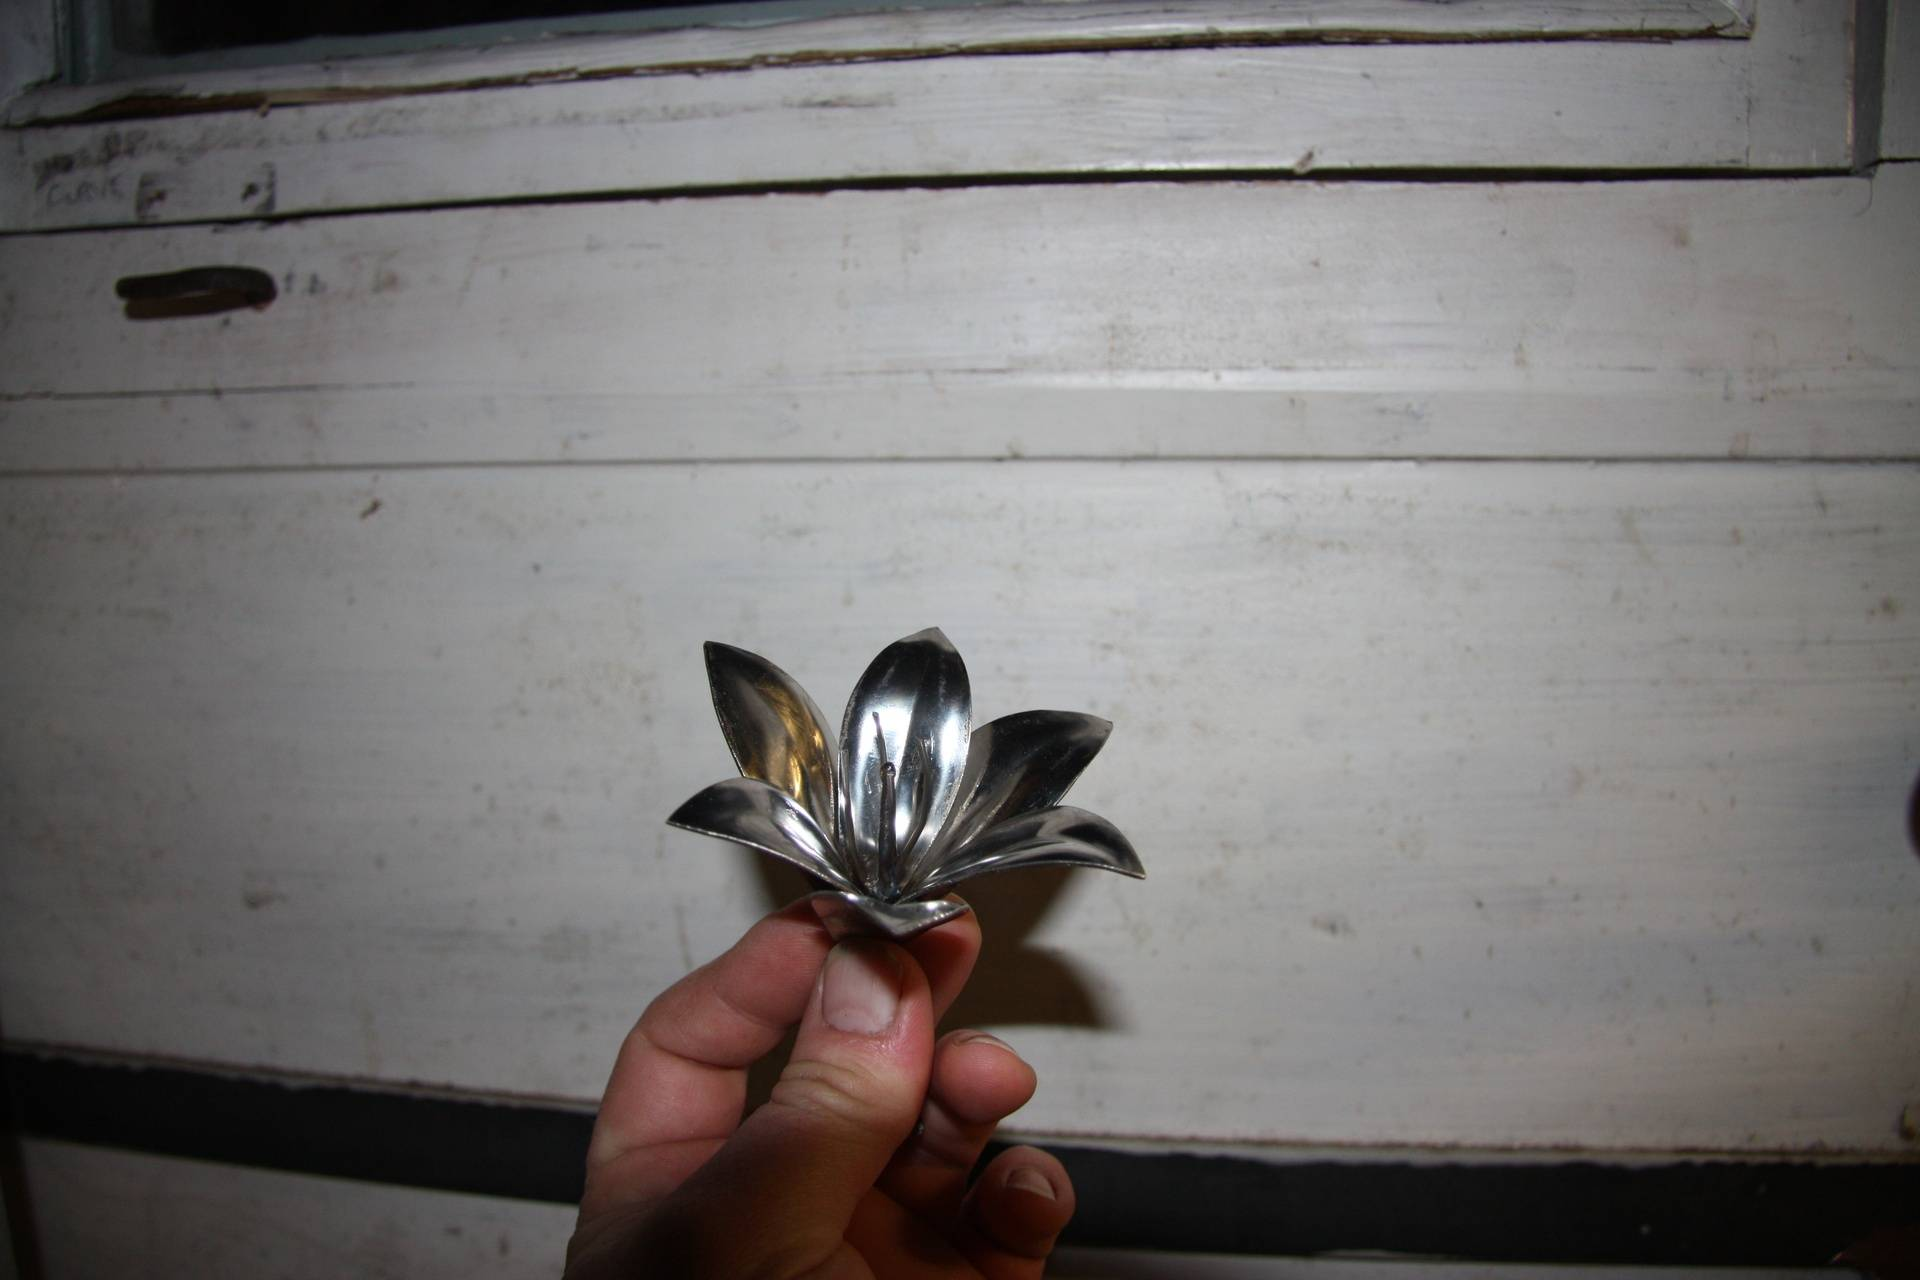 Stainless Lilly